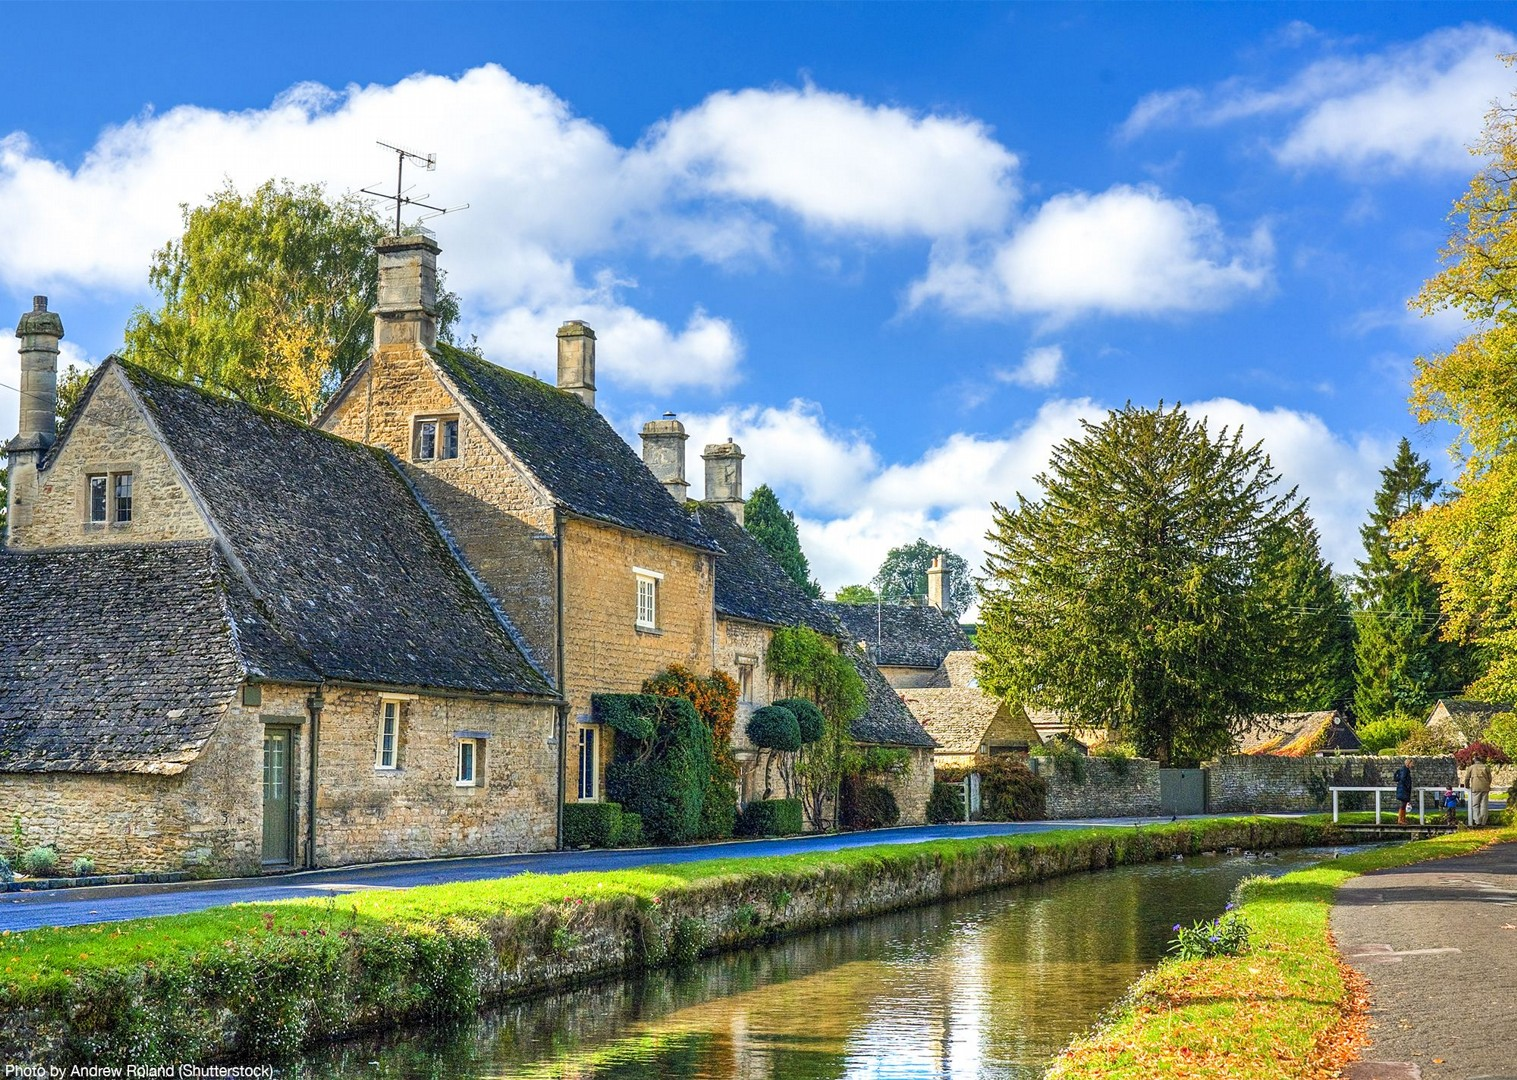 bibury-loop-cotswolds-bike-holiday-tour-saddle-skedaddle.jpg - UK - Cotswolds - Bourton-on-the-Water - Guided Leisure Cycling Holiday - Leisure Cycling